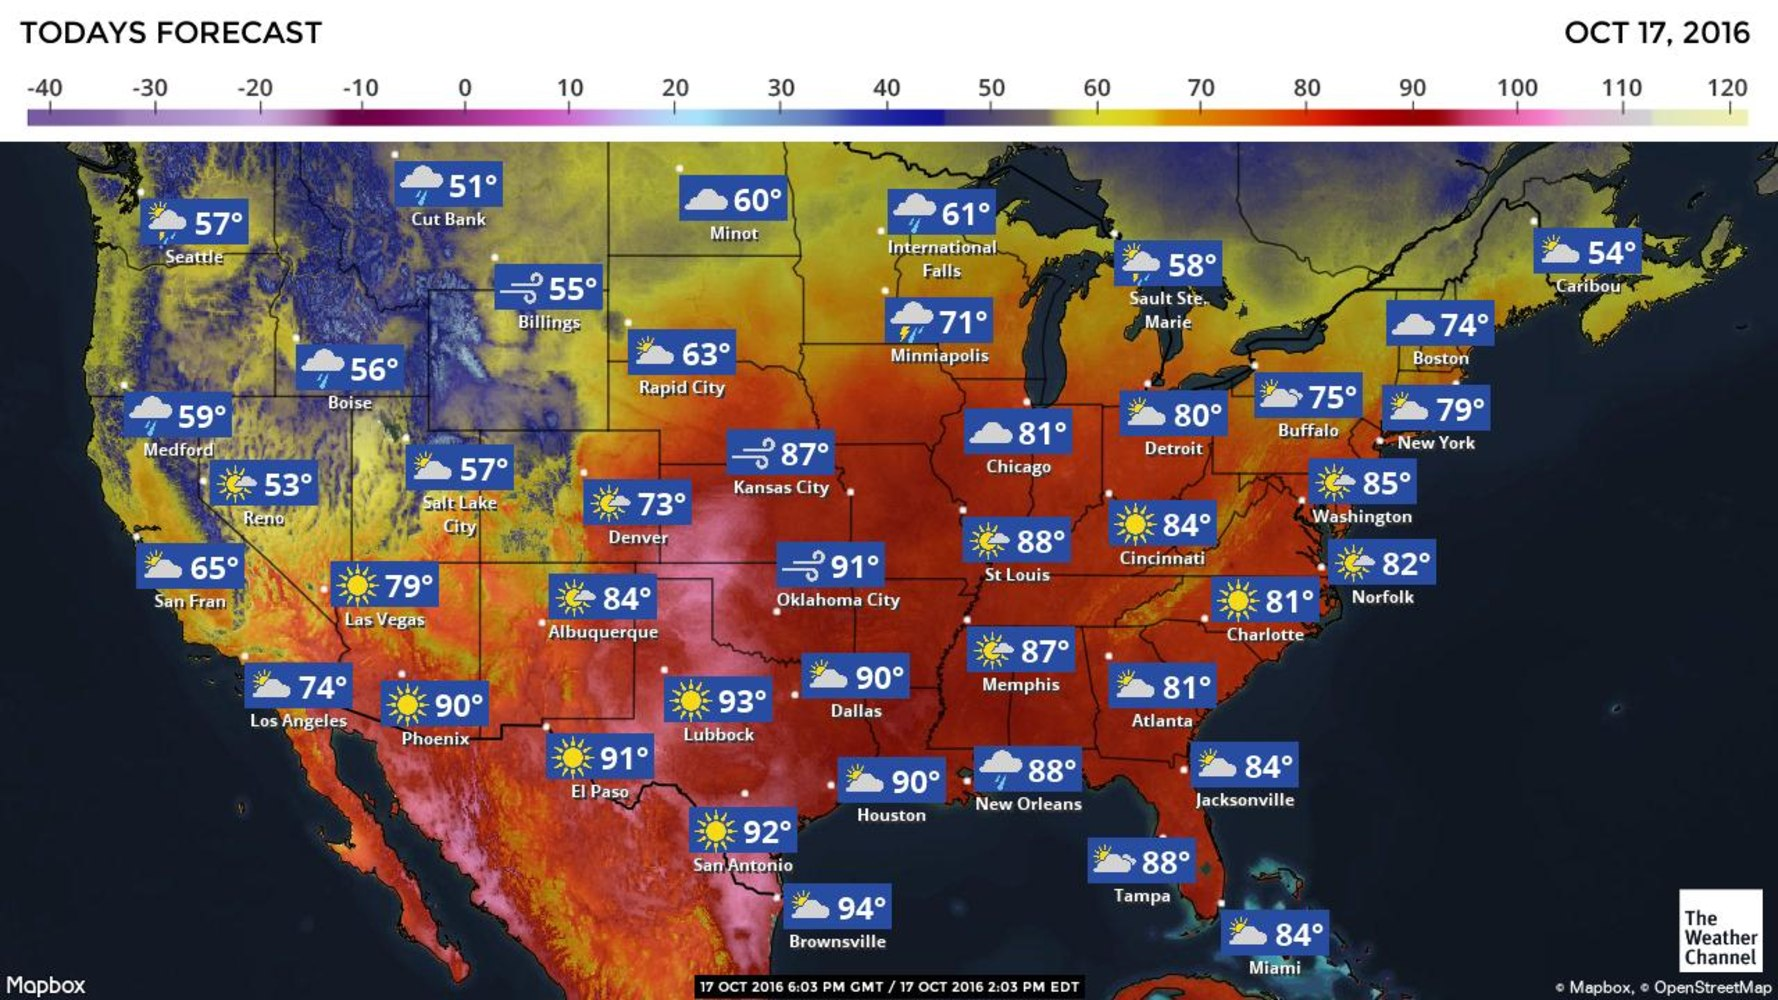 October Heat Wave Could Shatter Records Or More NBC News - Us weather map today